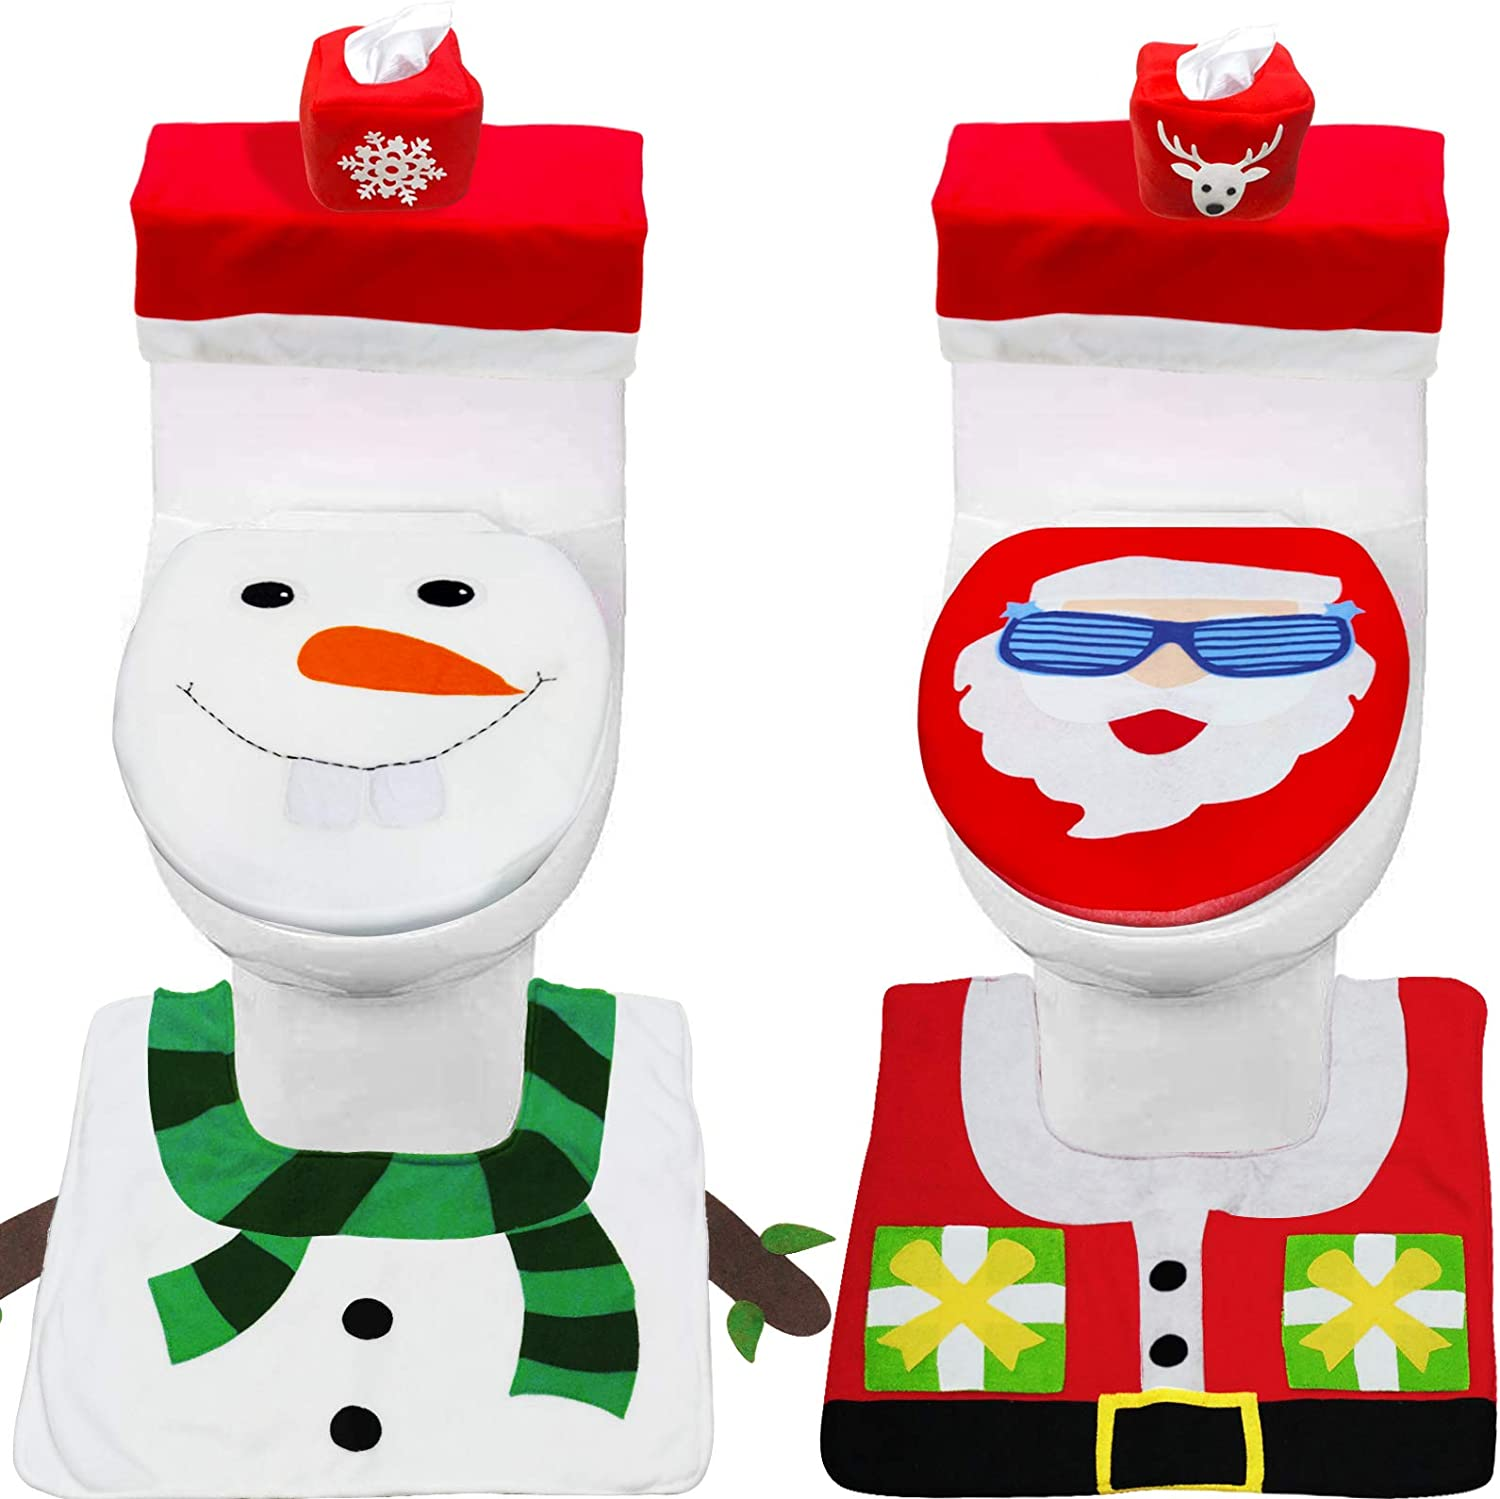 TURNMEON 8 Pieces Christmas Toilet Seat Cover Decorations, Double Sided 3D Funny Santa Snowman Christmas Toilet Seat Cover Lid and Rug Set Holiday Christmas Decoration Bathroom Indoor Home Xmas Decor